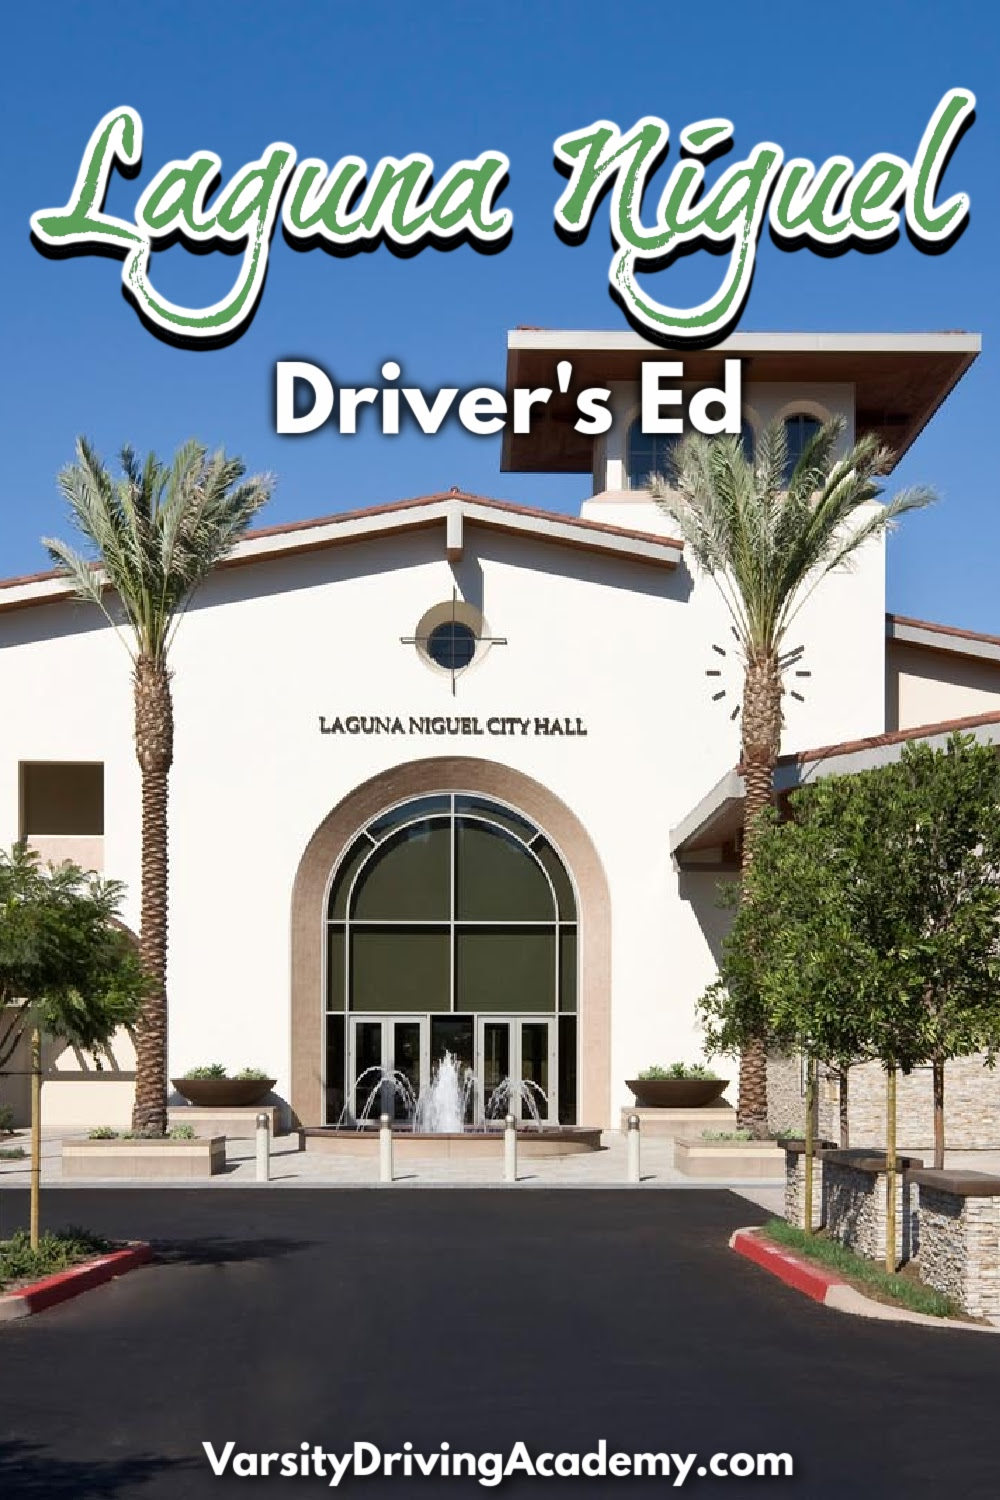 Varsity Driving Academy is the best Laguna Niguel drivers ed service available to both teens and adults who want to learn how to drive safely.